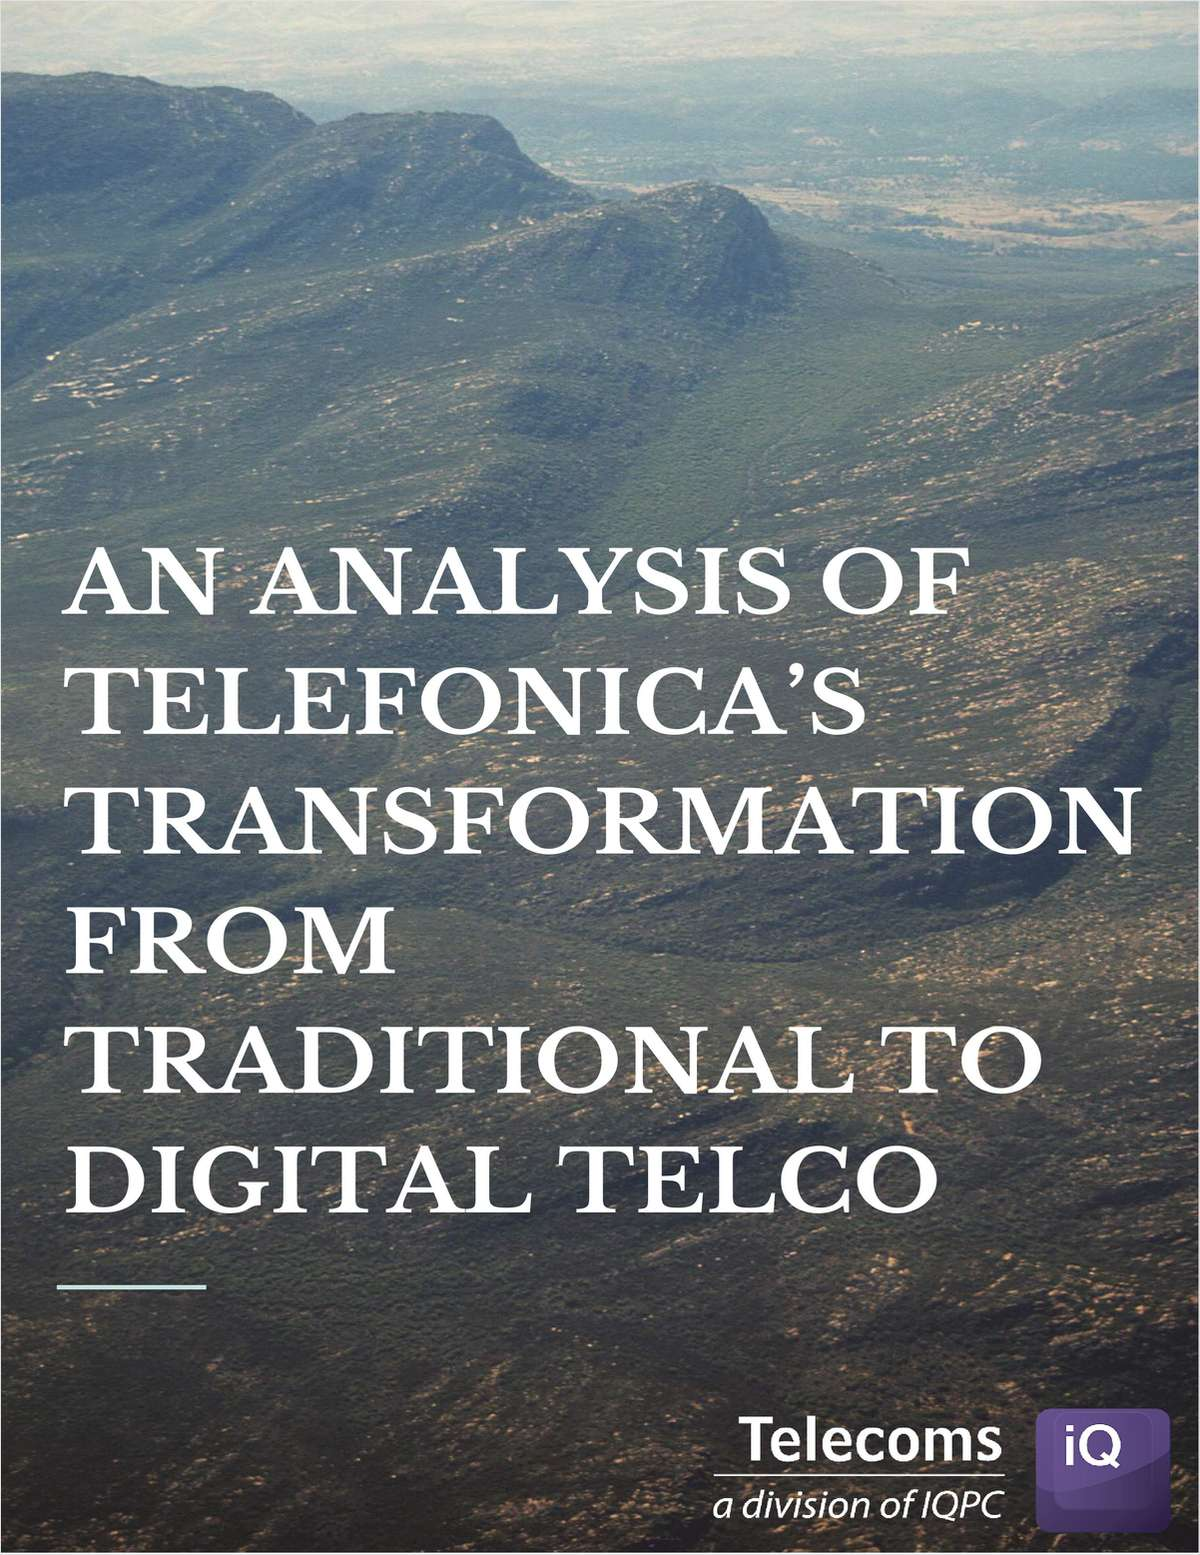 An Analysis of Telefonica's Transformation from Traditional to Digital Telco